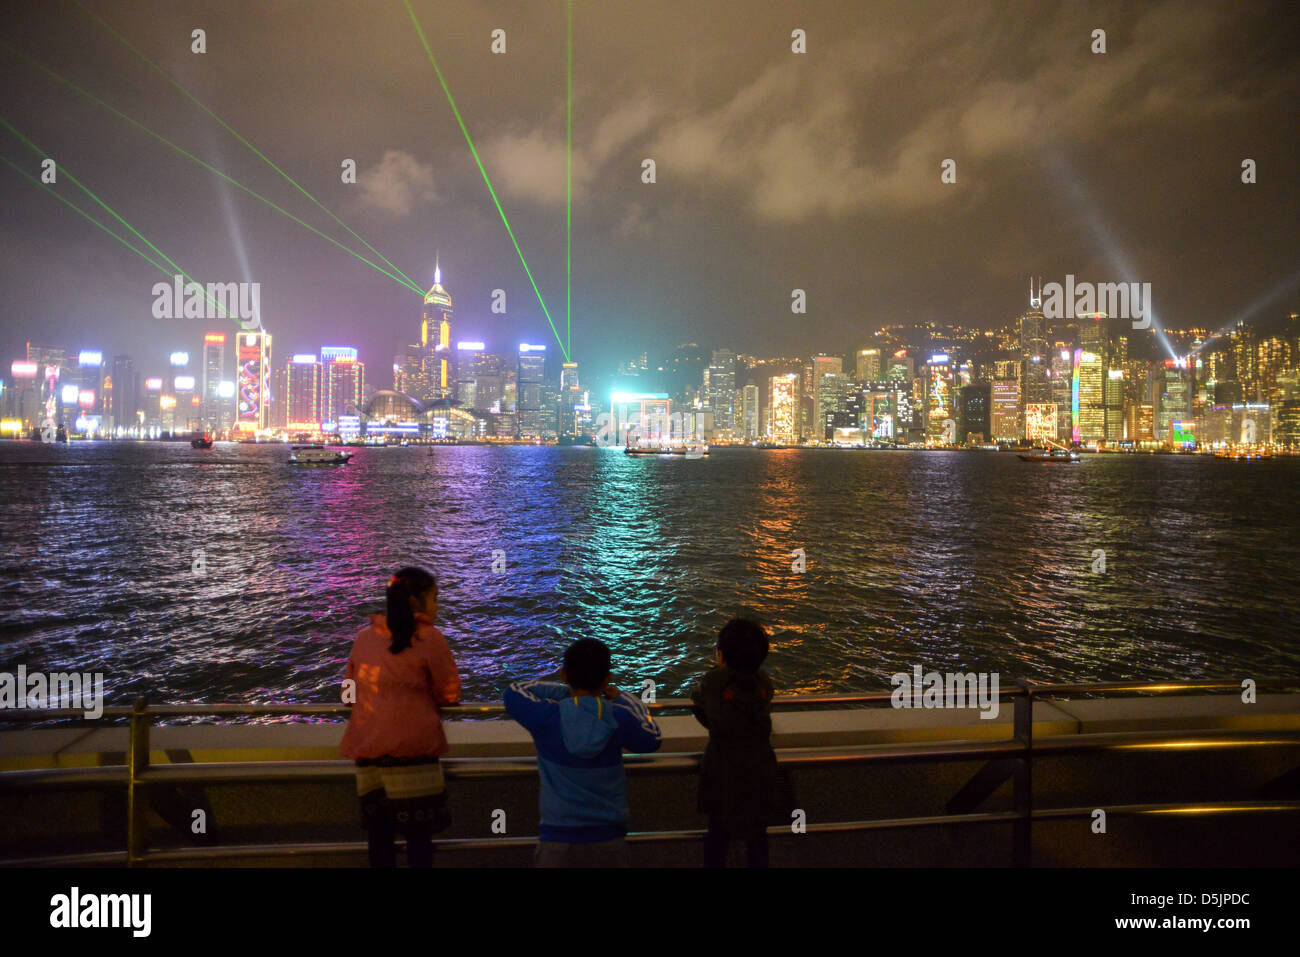 lights on the Skyline Hong Kong Island - Stock Image